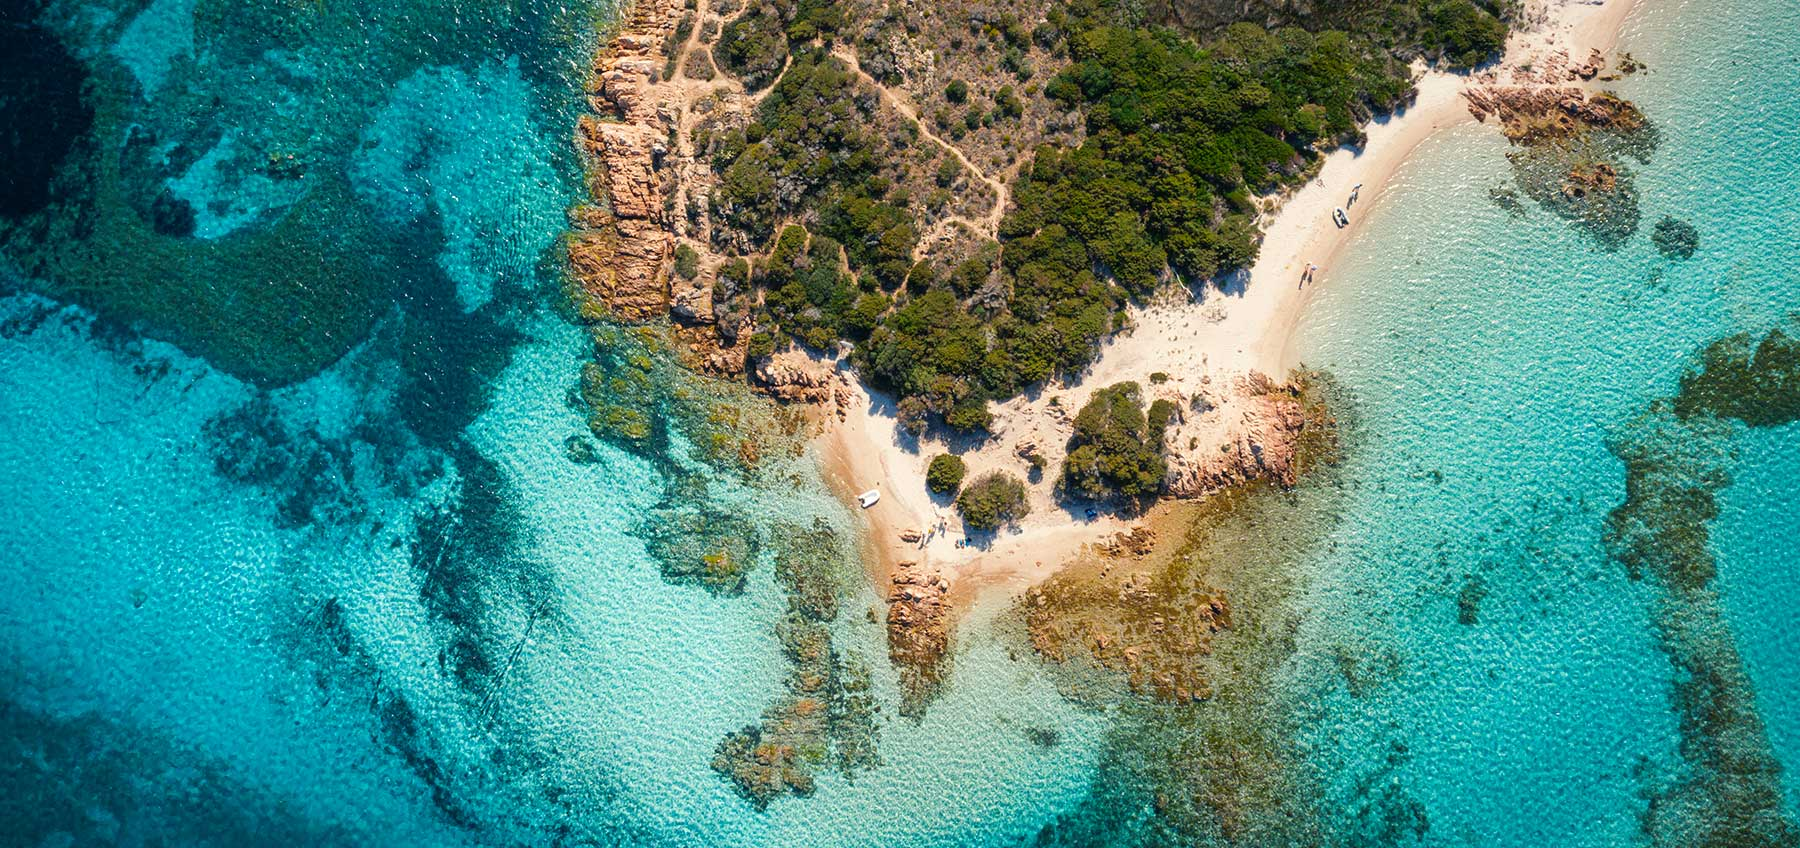 North Eastern Sardinia, Gallura, the Costa Smeralda and the islands